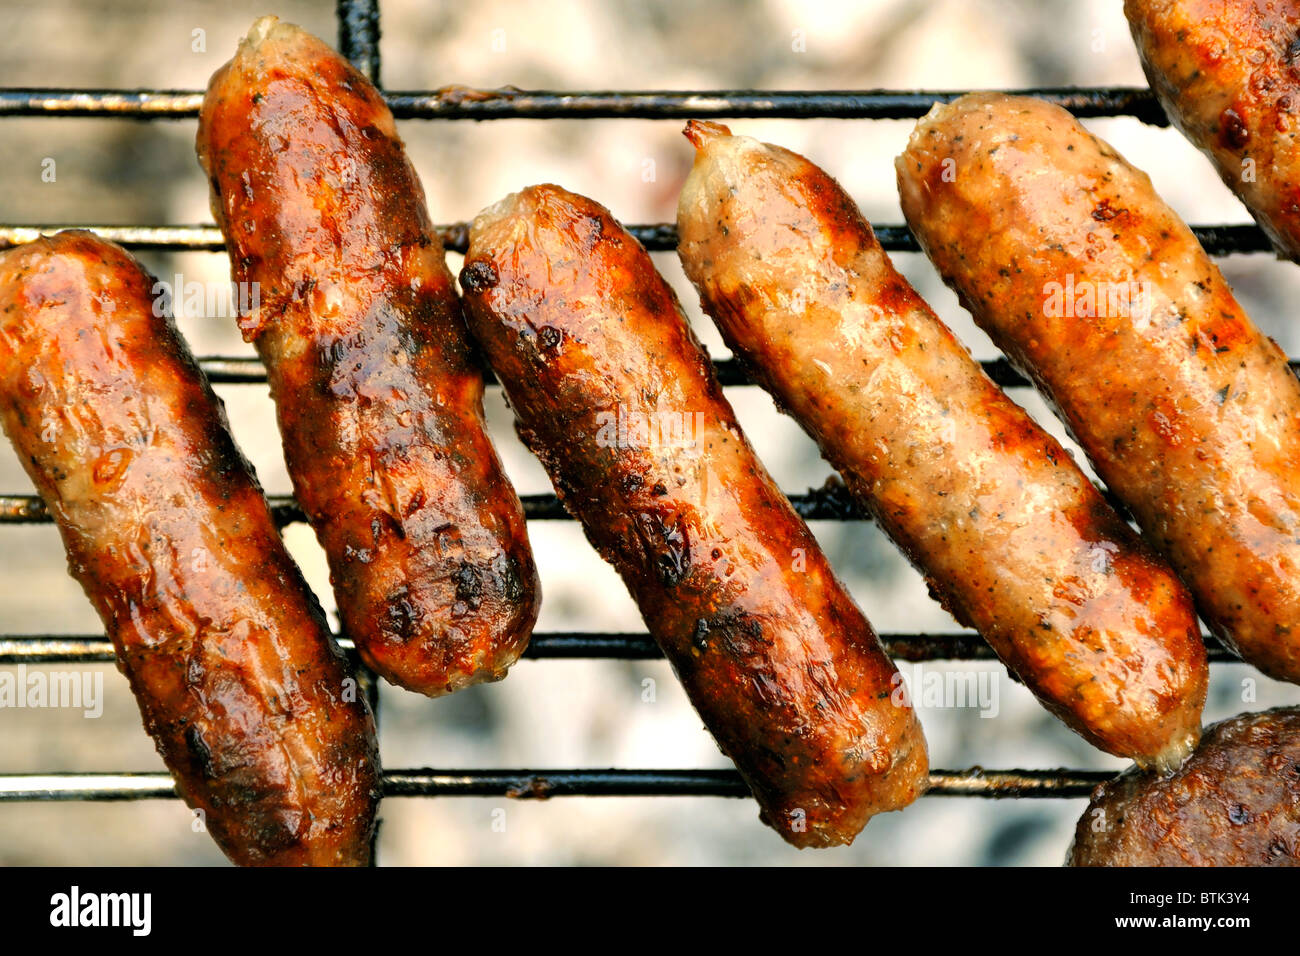 Les saucisses sur un barbecue Photo Stock